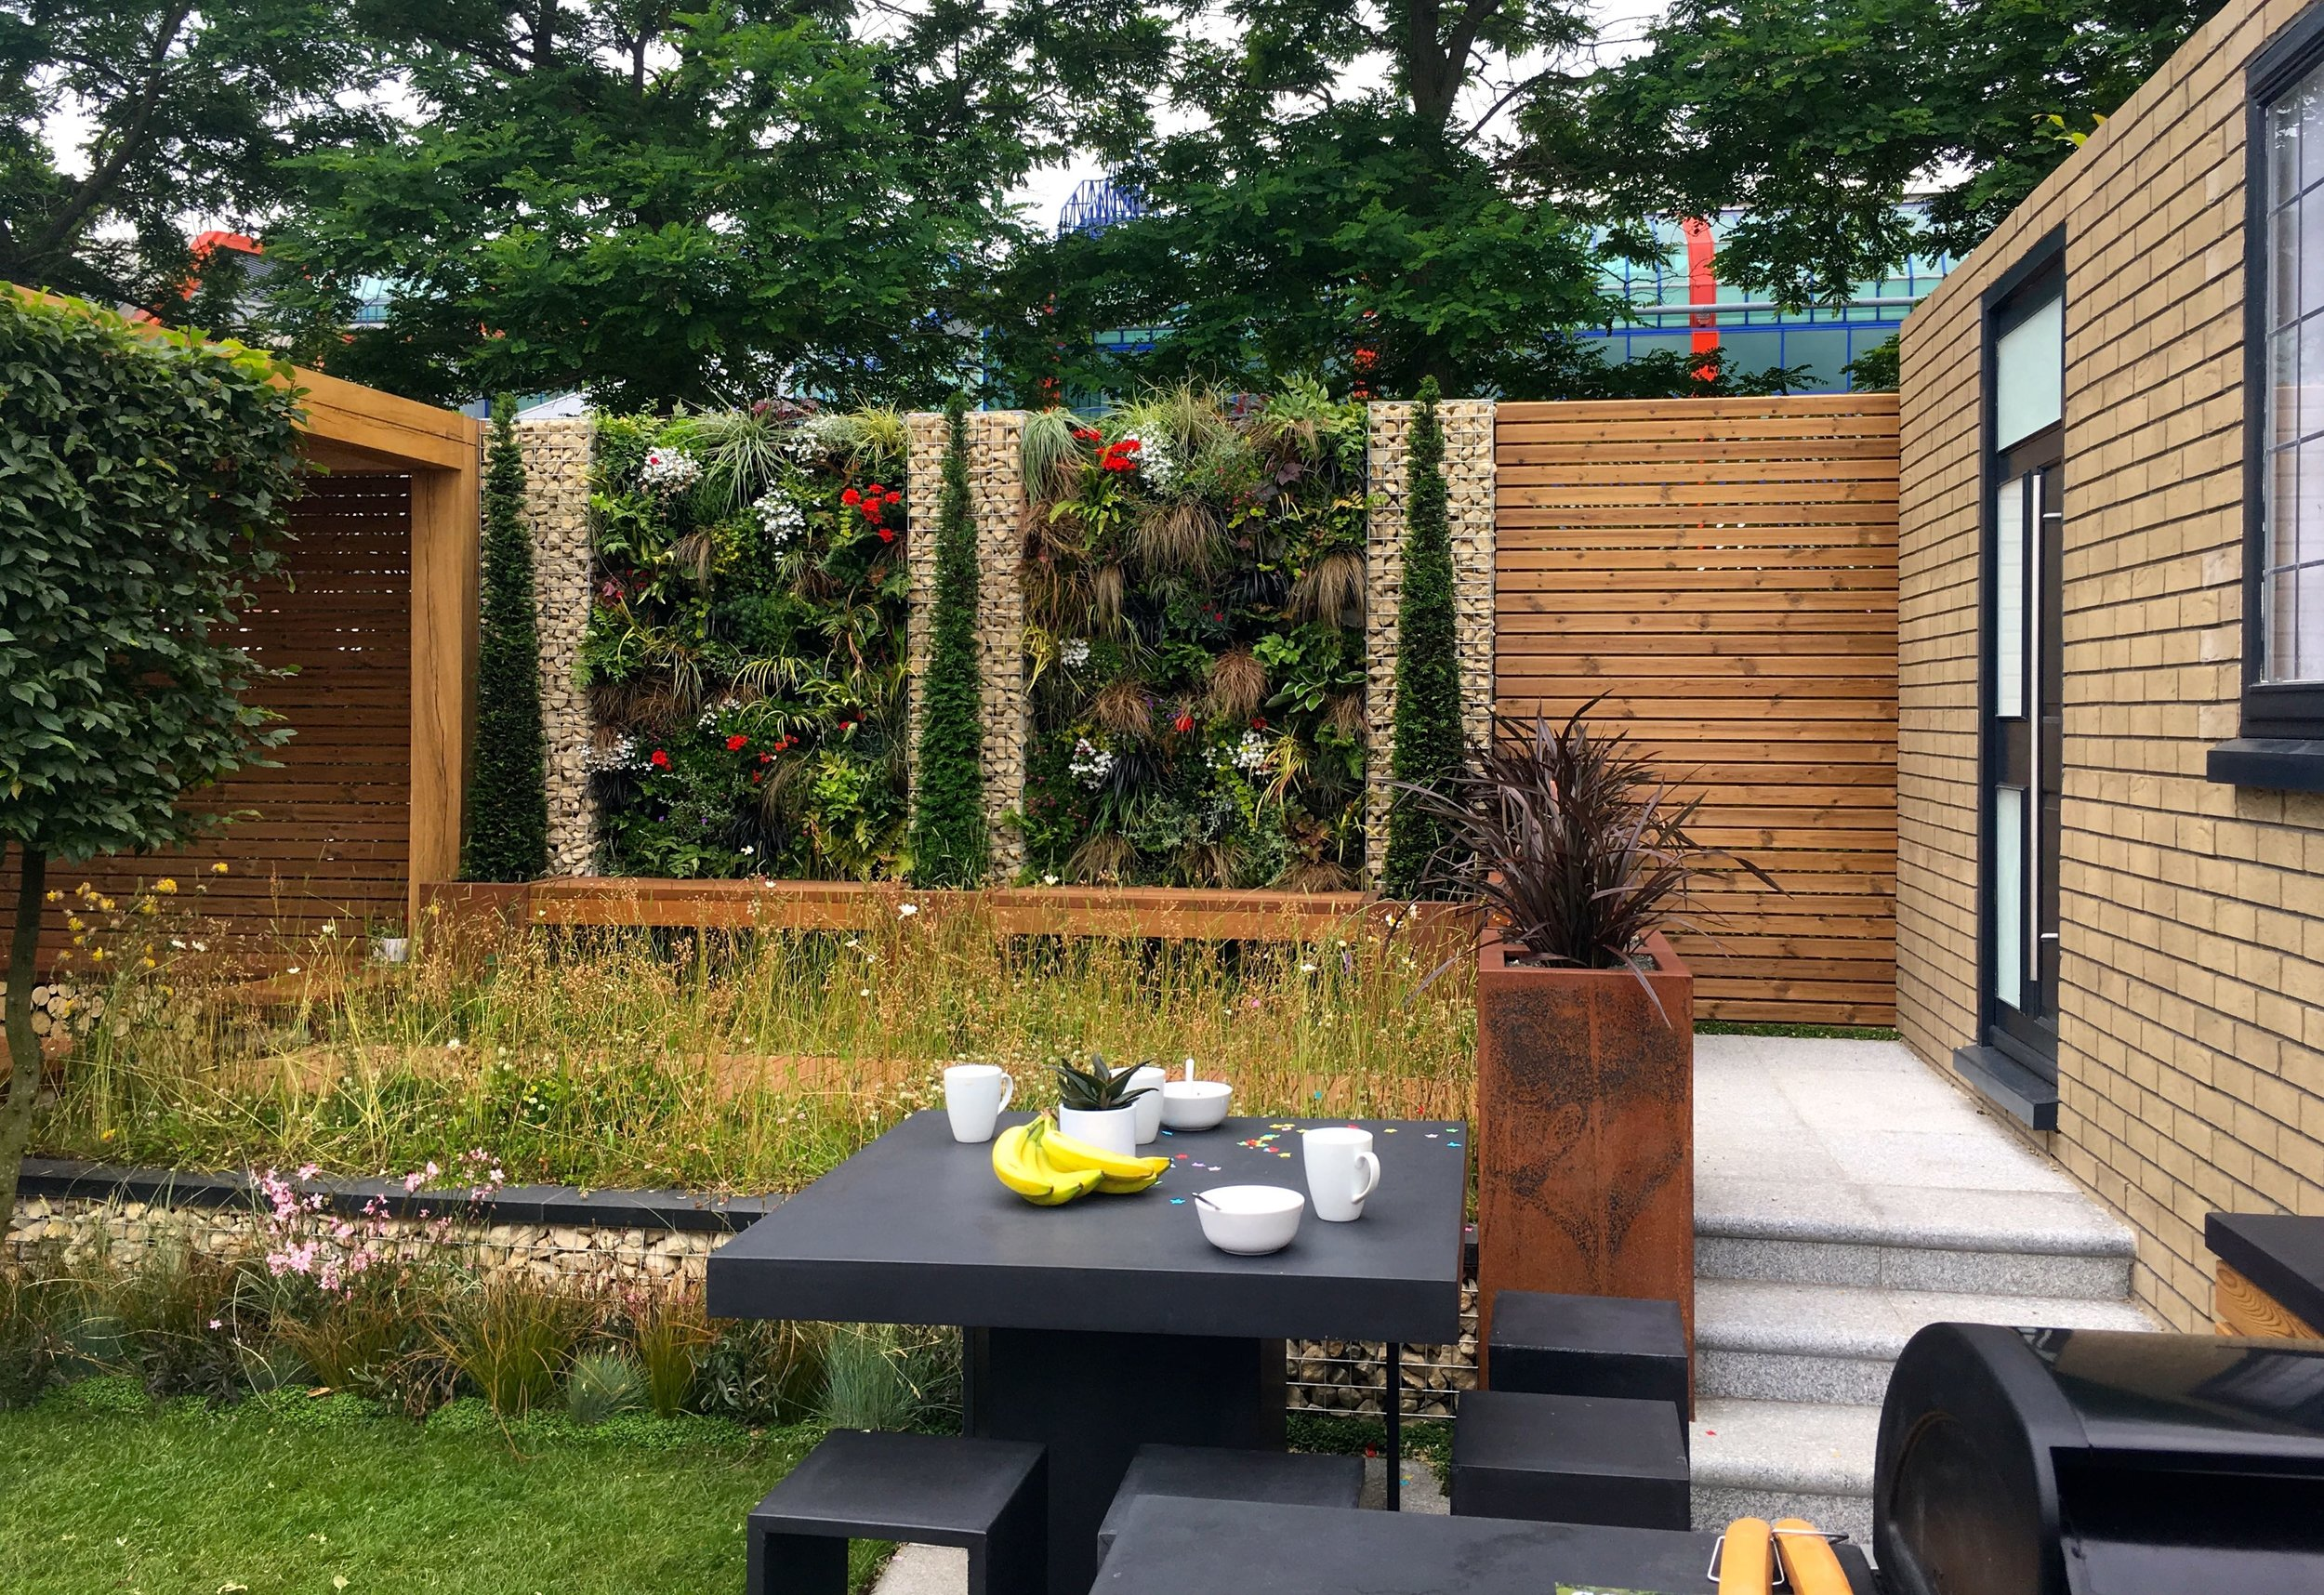 A calming tranquil garden space at Gardeners' World Live